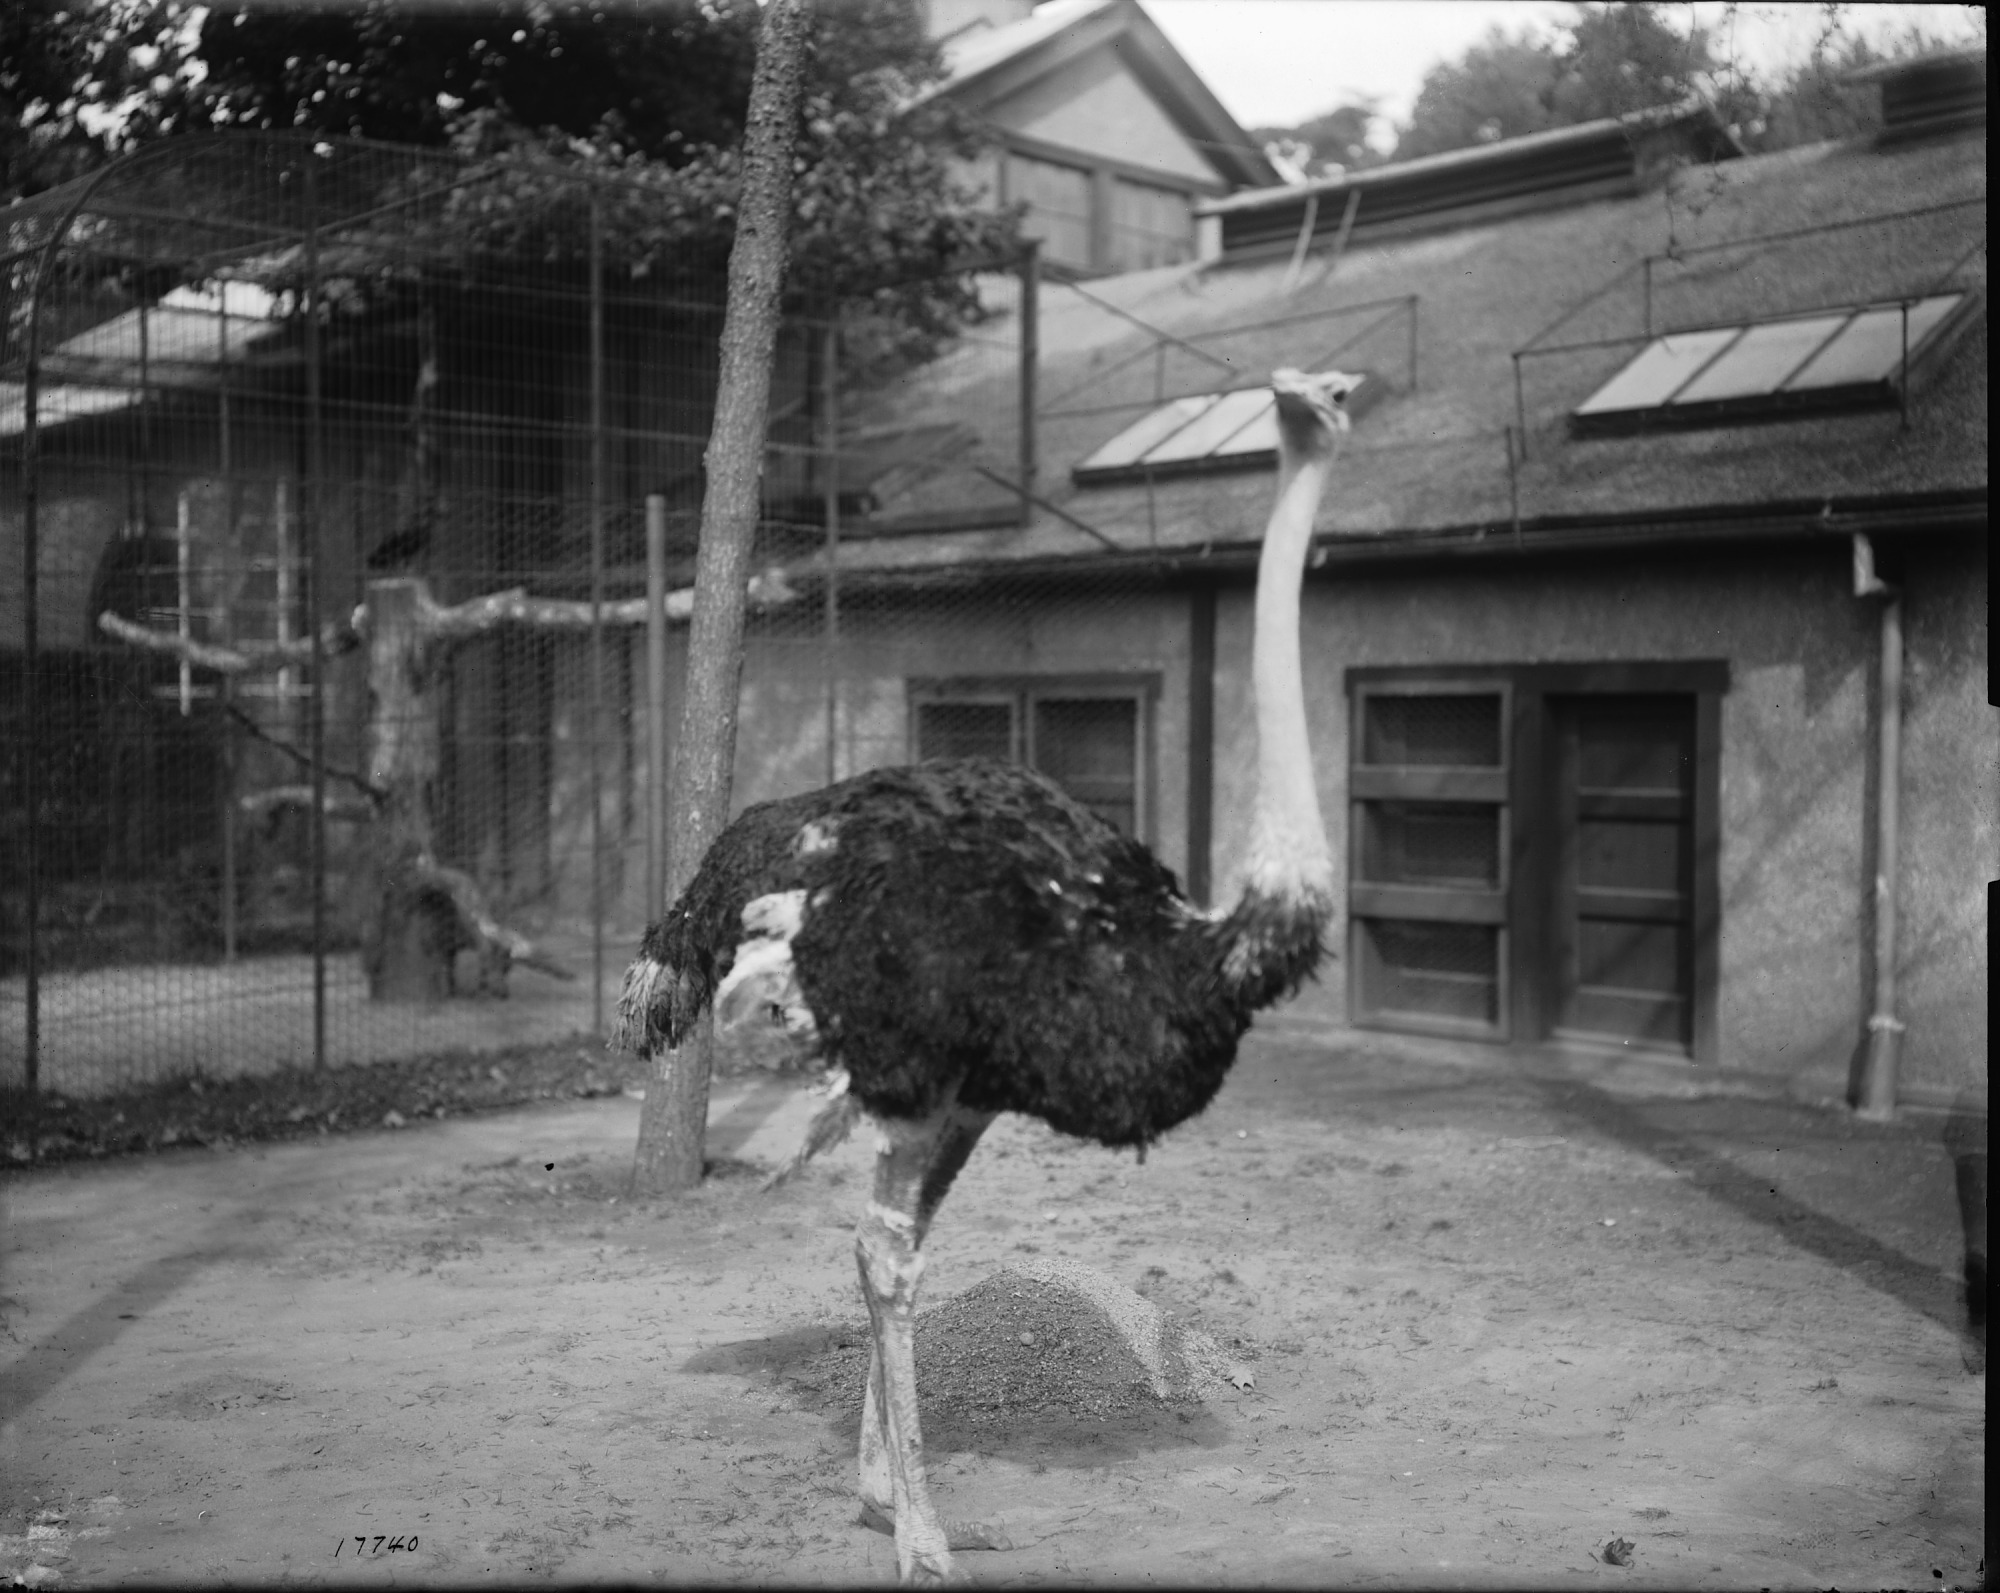 Ostrich at the National Zoo